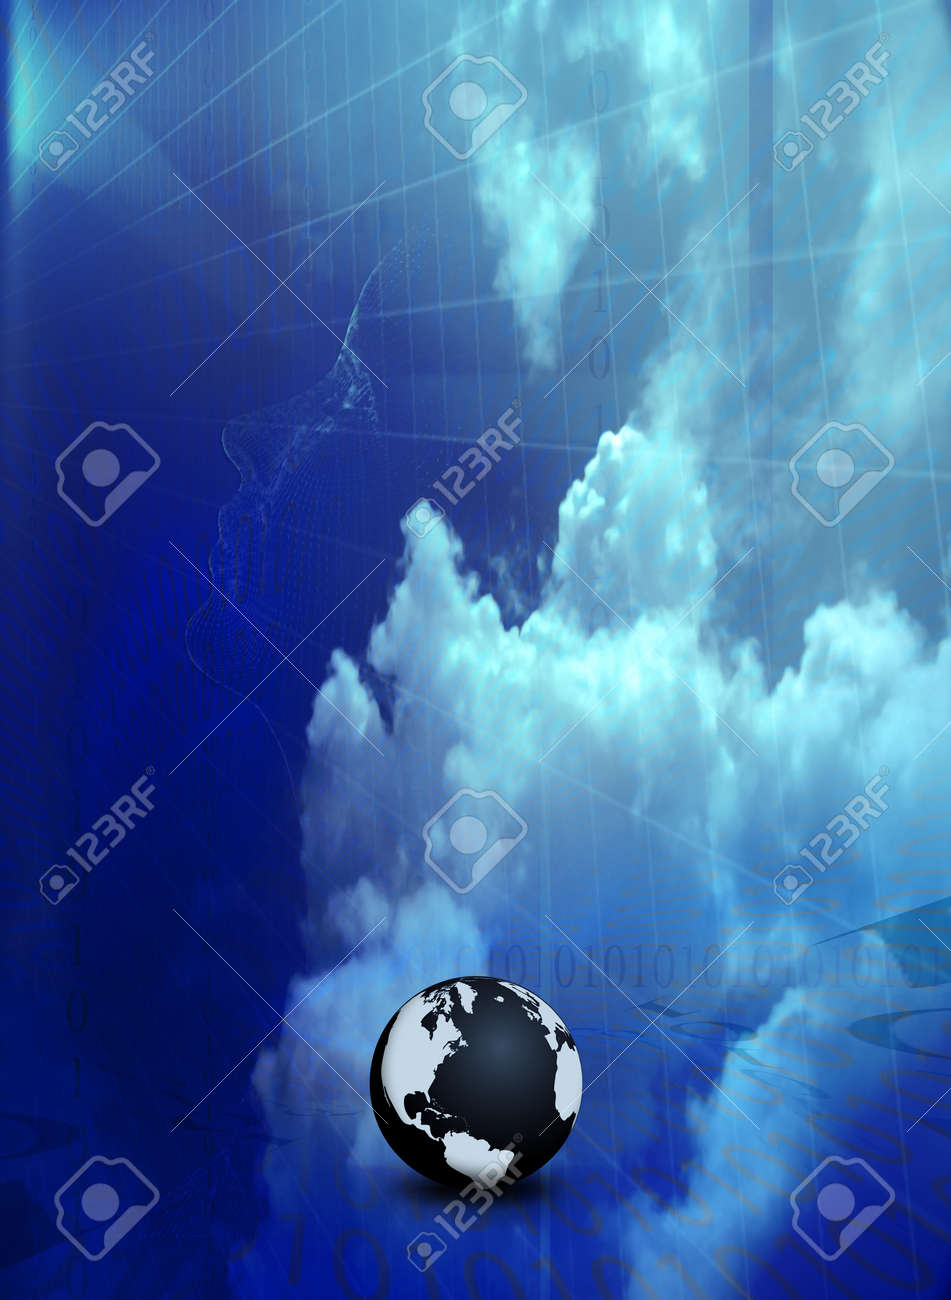 Technology Abstract Stock Photo - 4359823